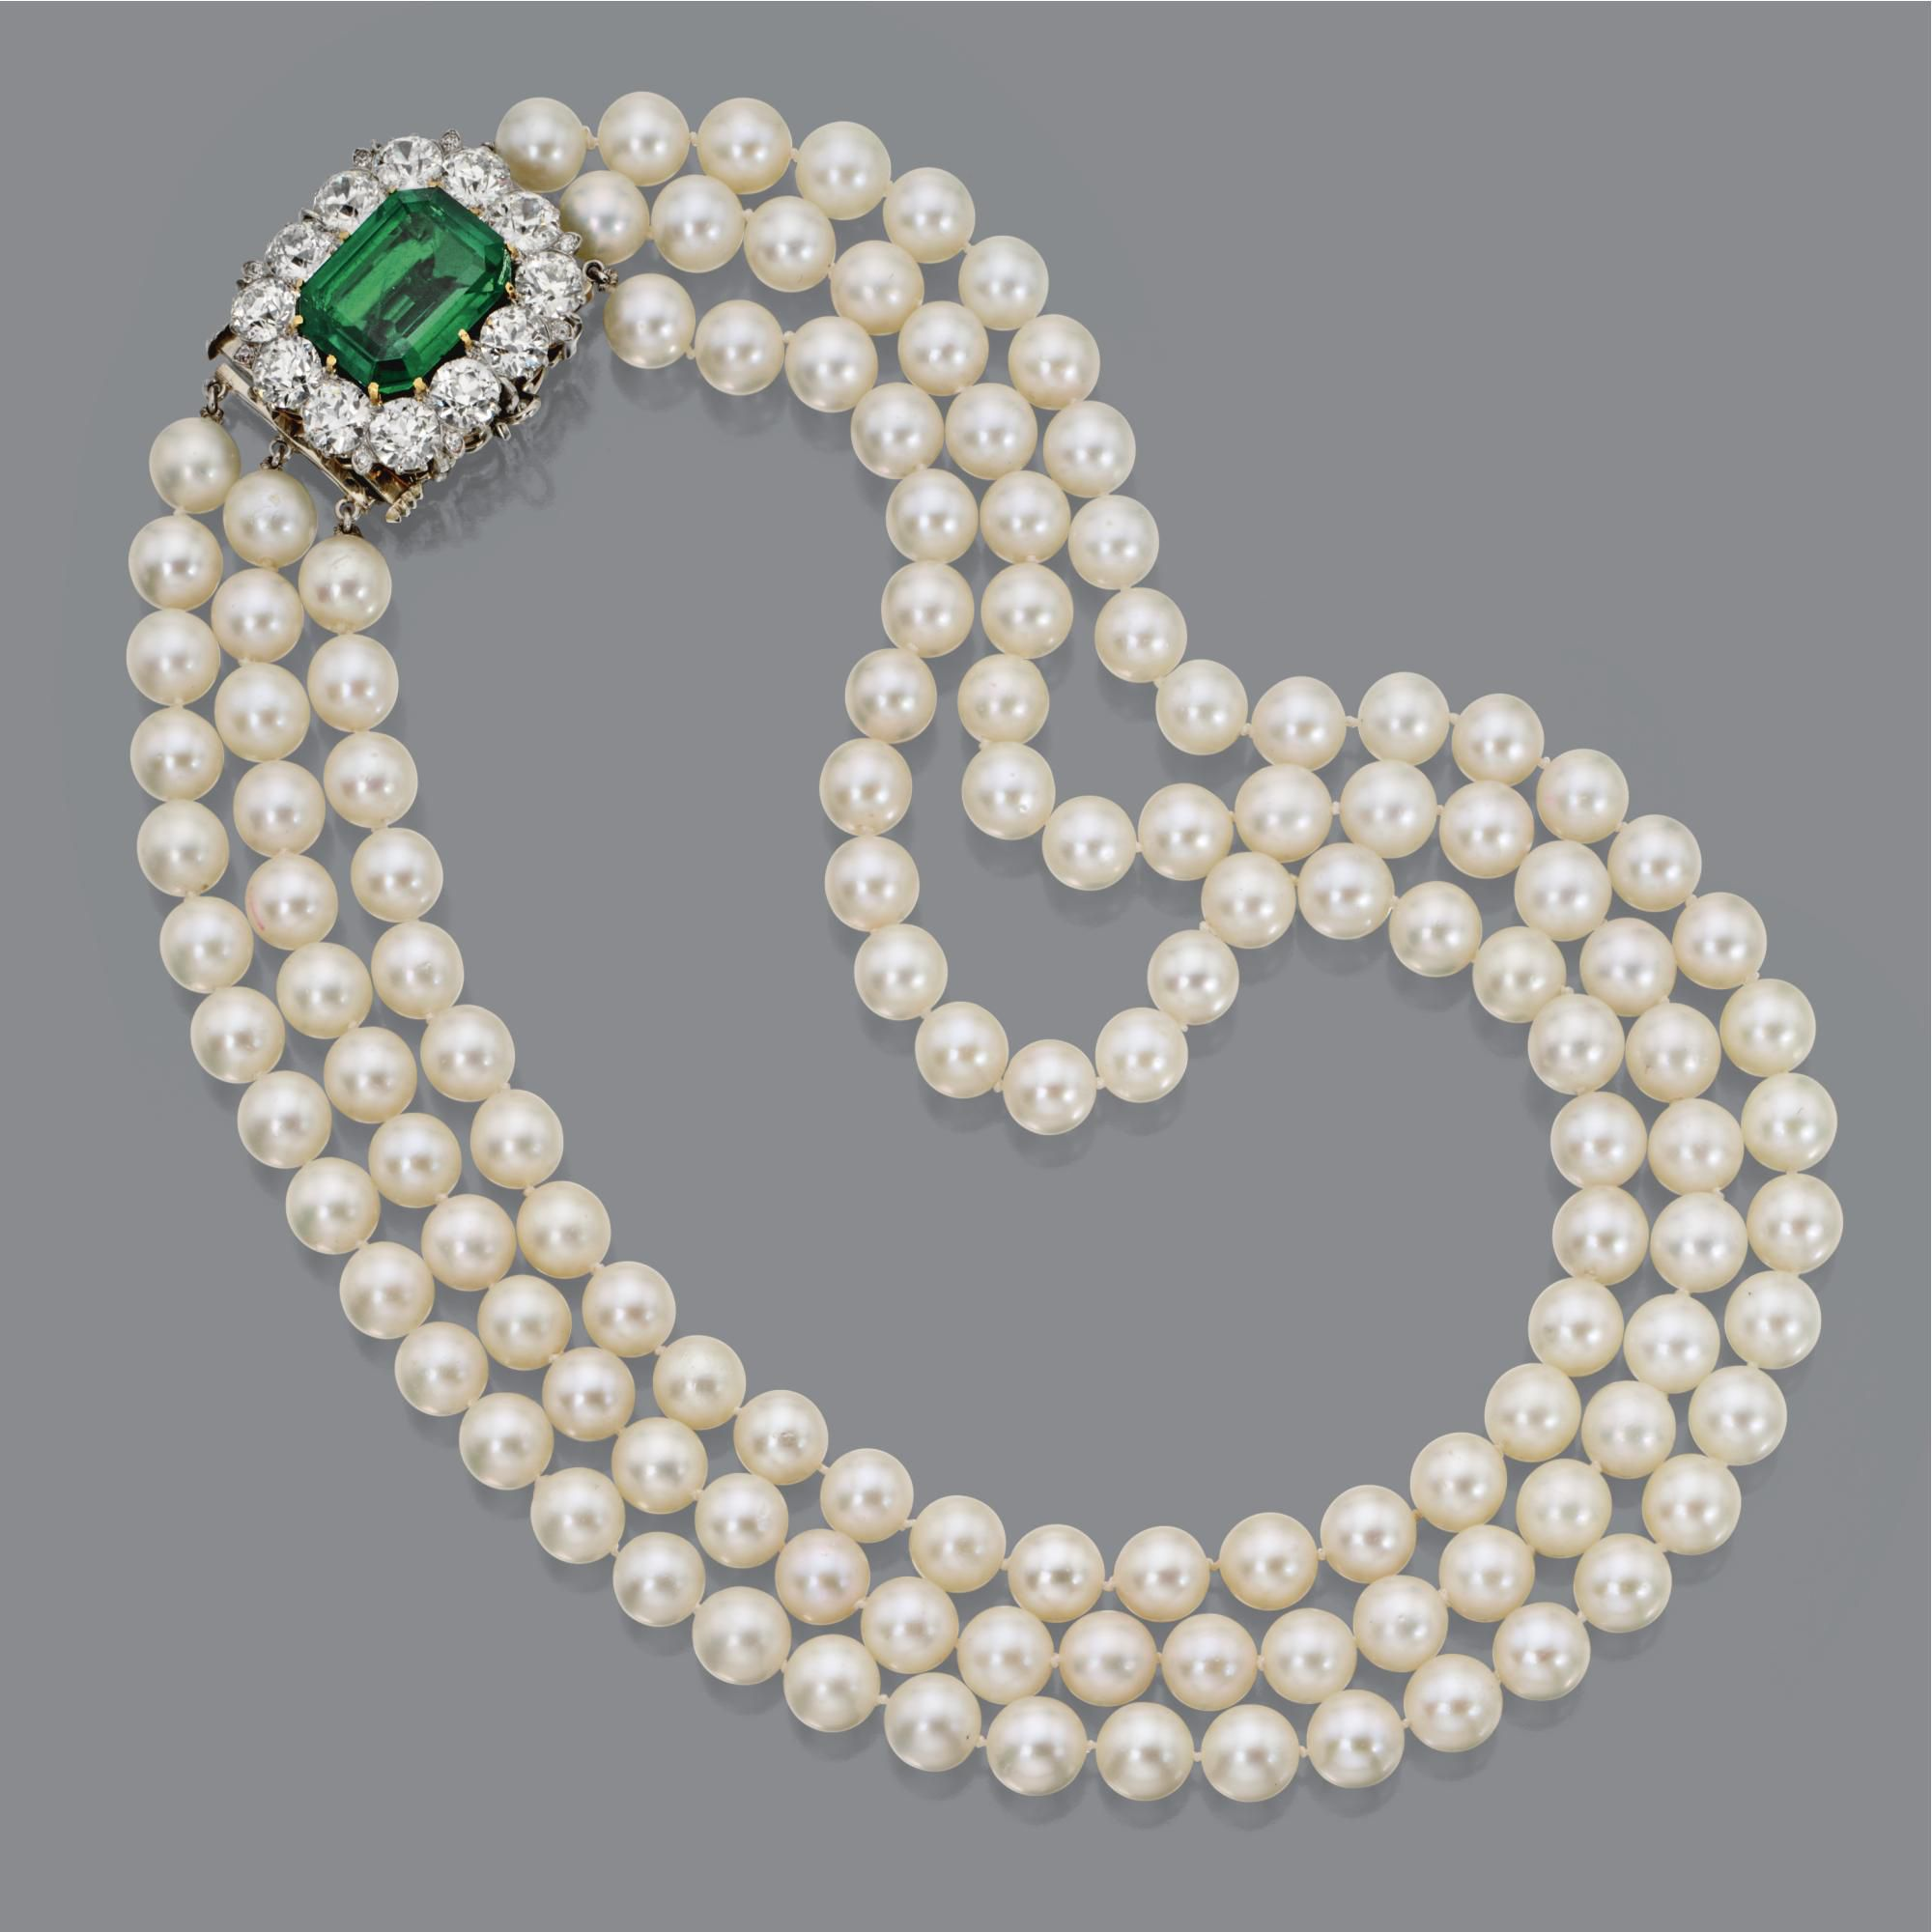 9ce349c8c948d Cultured Pearl Necklace with Emerald and Diamond Clasp -- The three ...